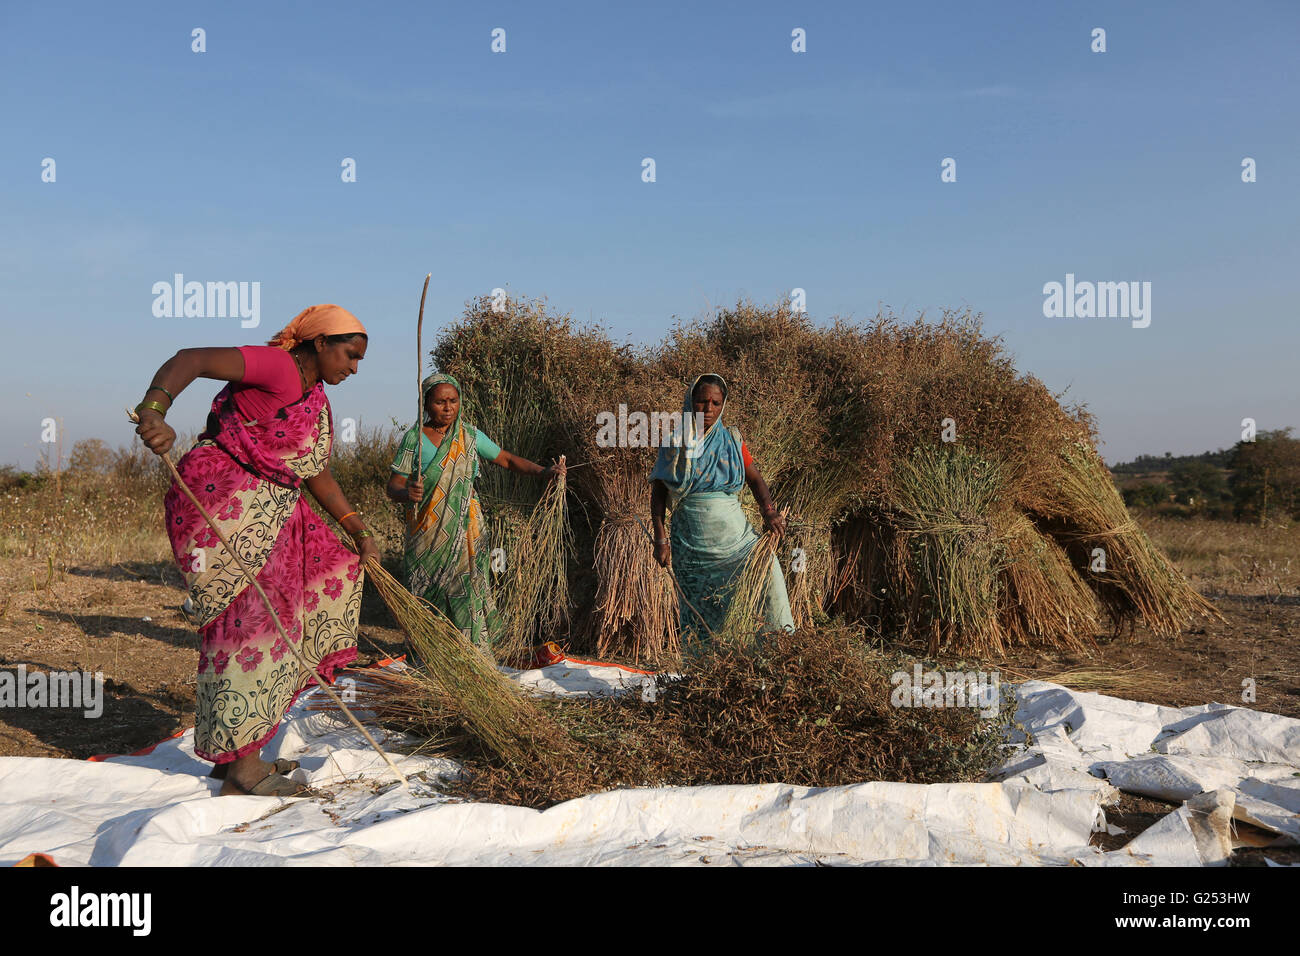 PRADHAN TRIBE - Tribal women beating the Tur Sheaf in Pradhan boti Village, Kalam Taluka, in Maharashtra in India - Stock Image